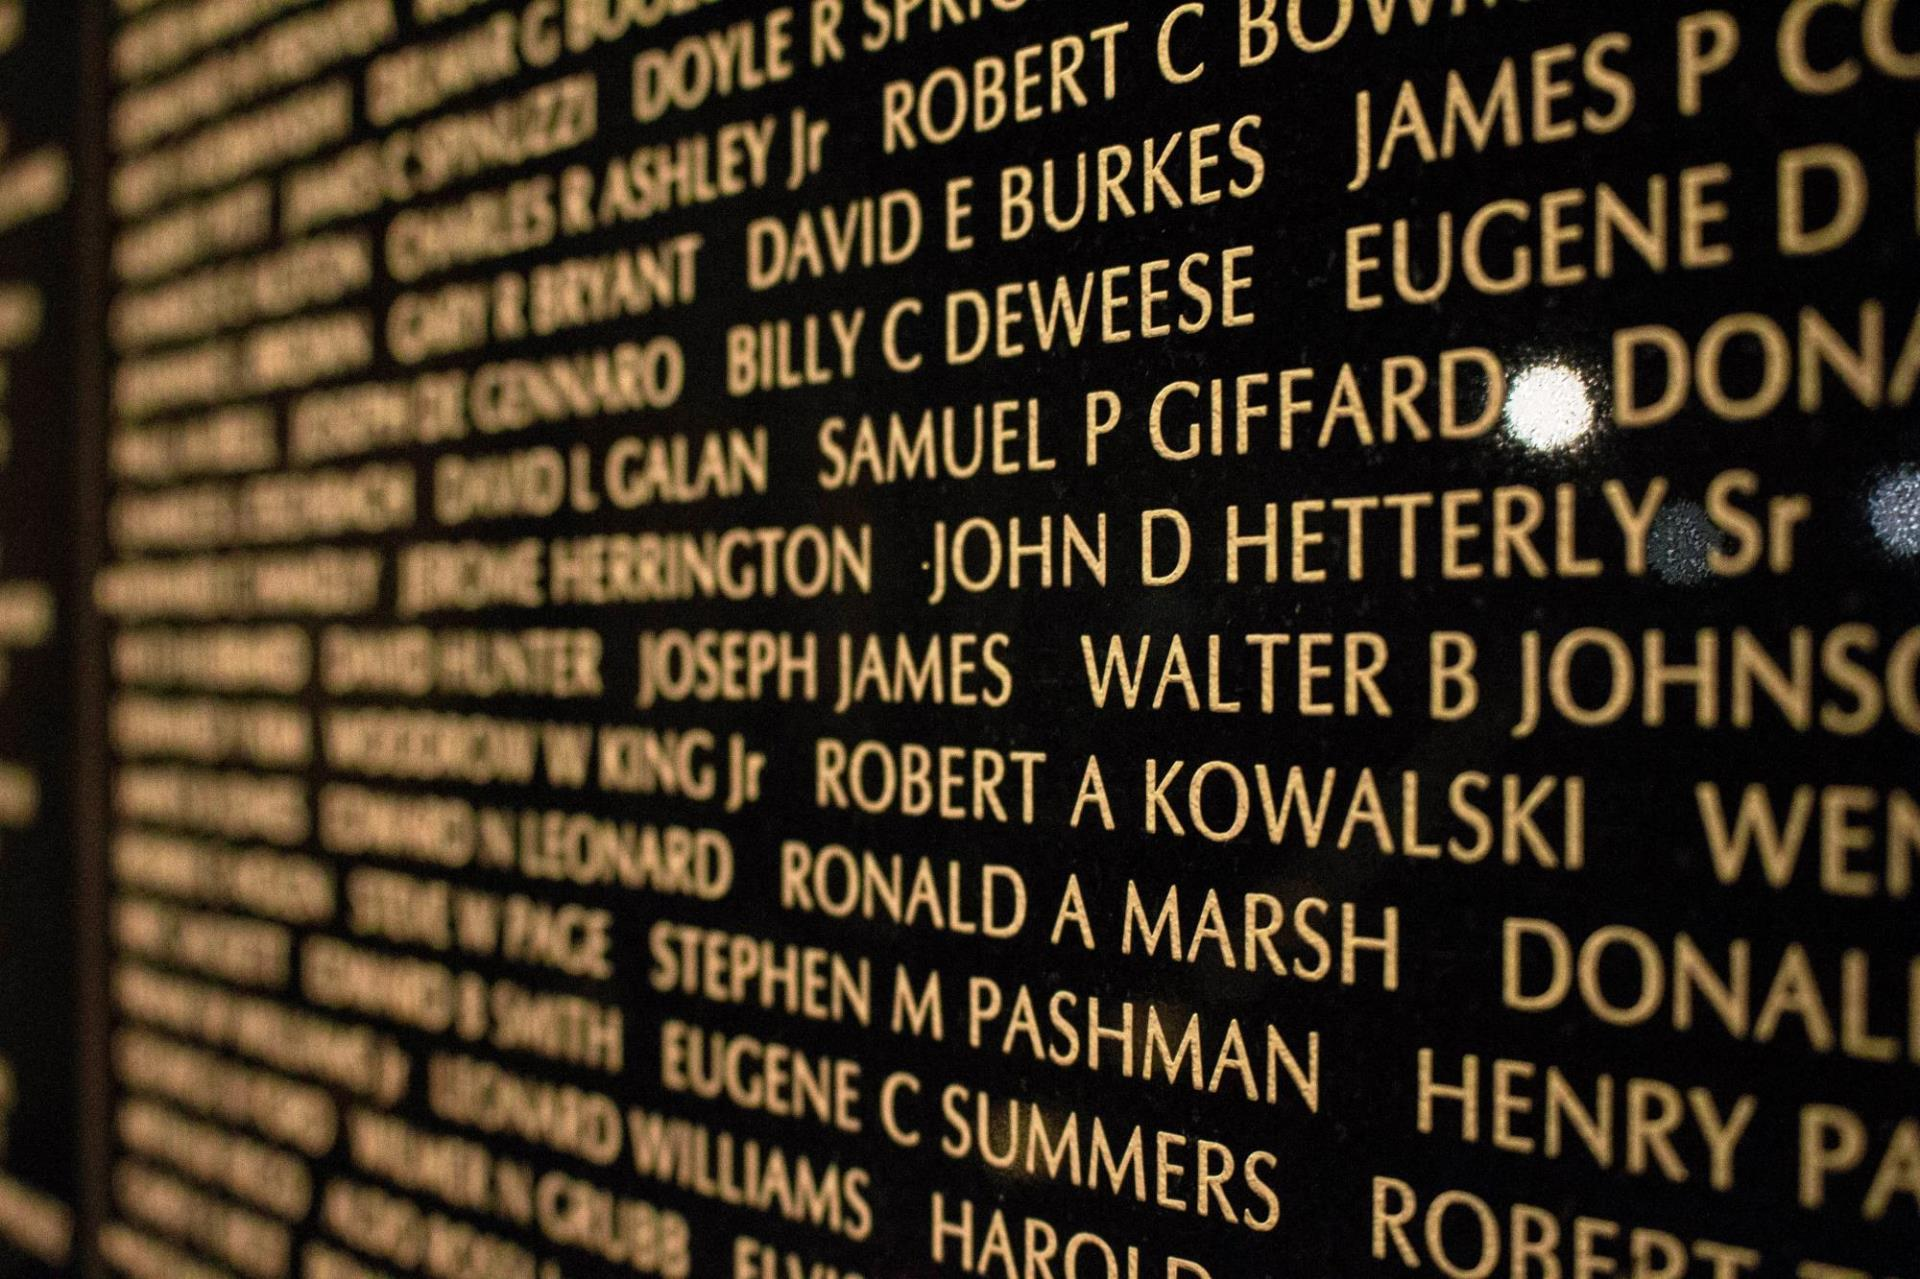 Close up of Veterans Wall panels with names listed